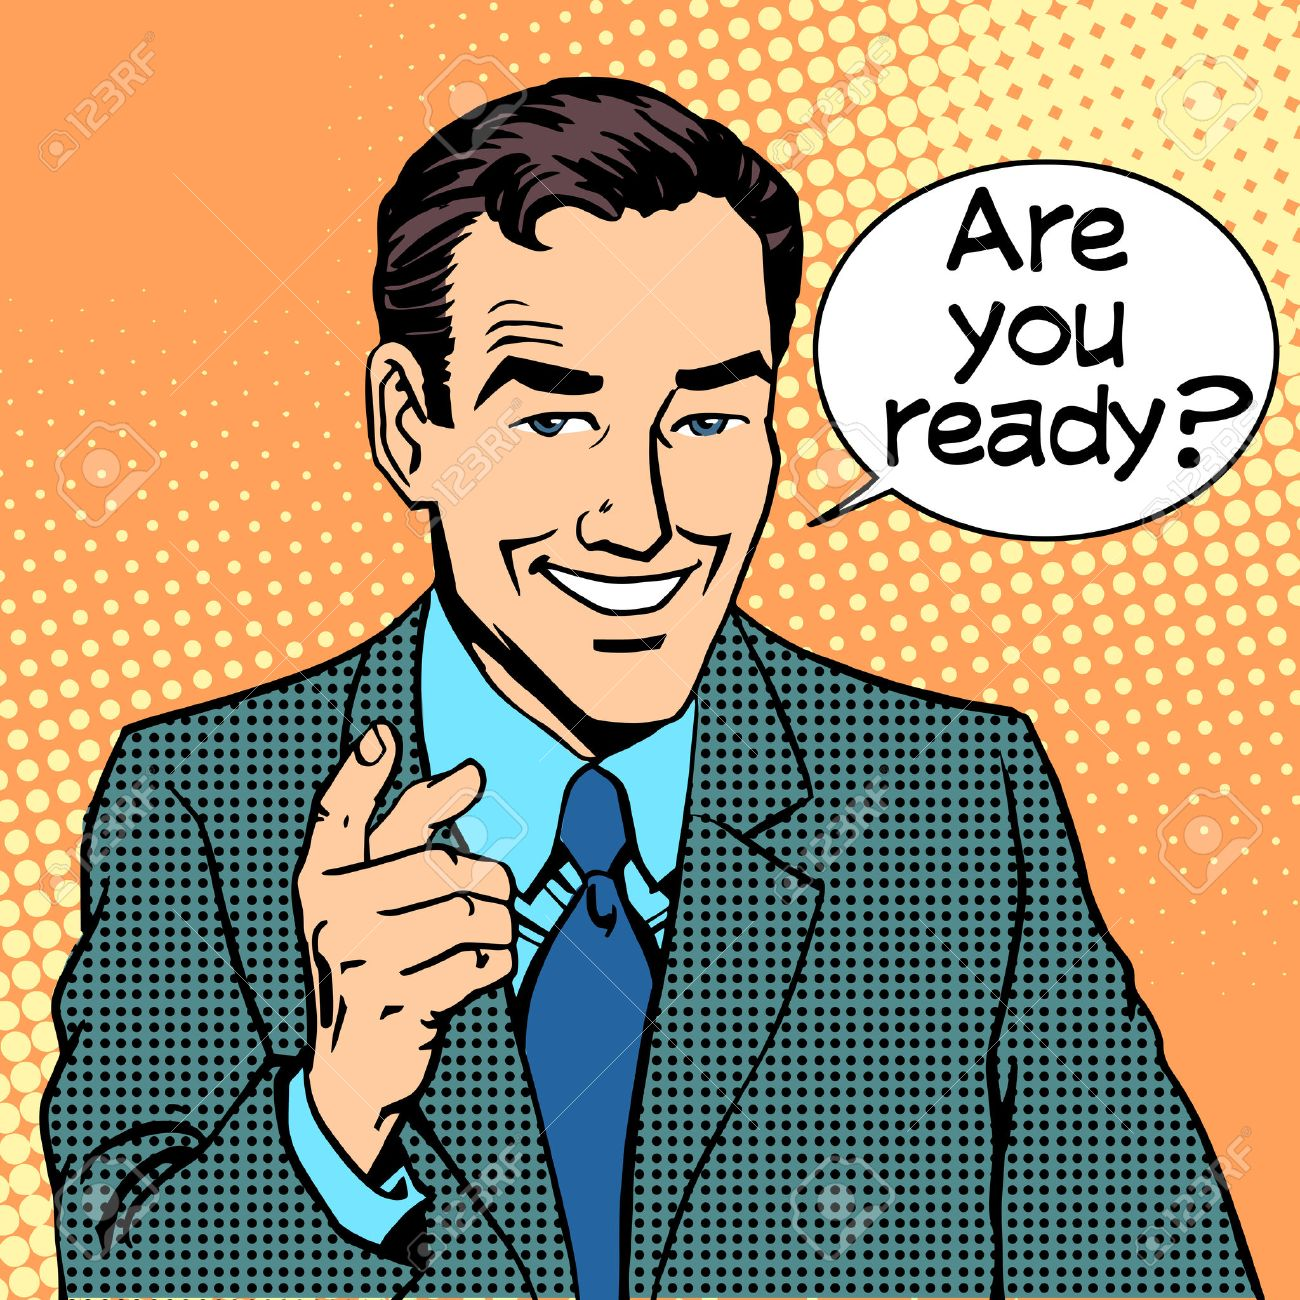 Are you ready businessman says retro style pop art - 44313543